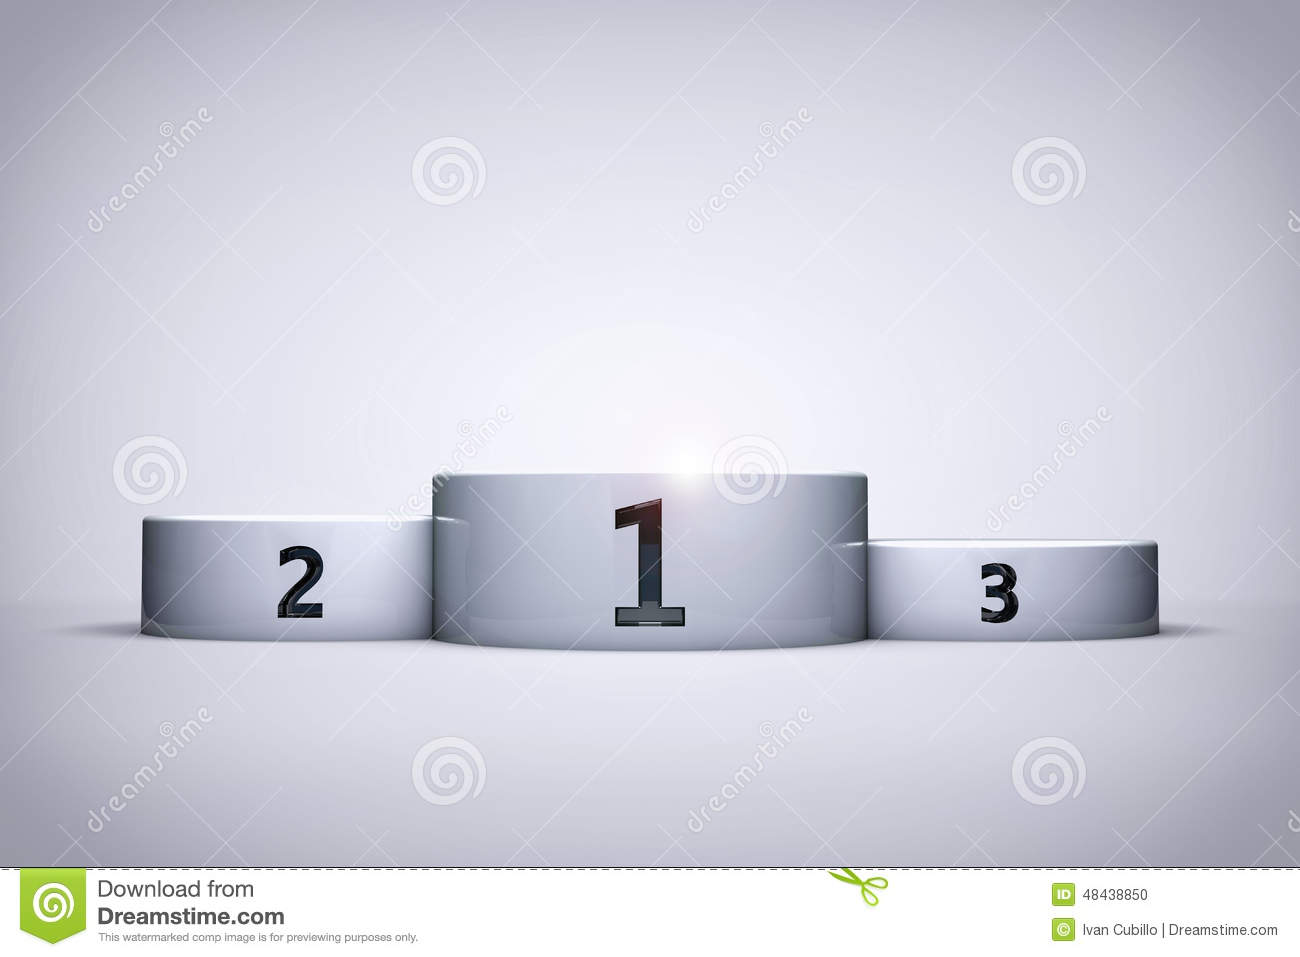 Stock Illustration Ch ionship Podium Background Wallpaper Winer Image48438850 on award ceremony background